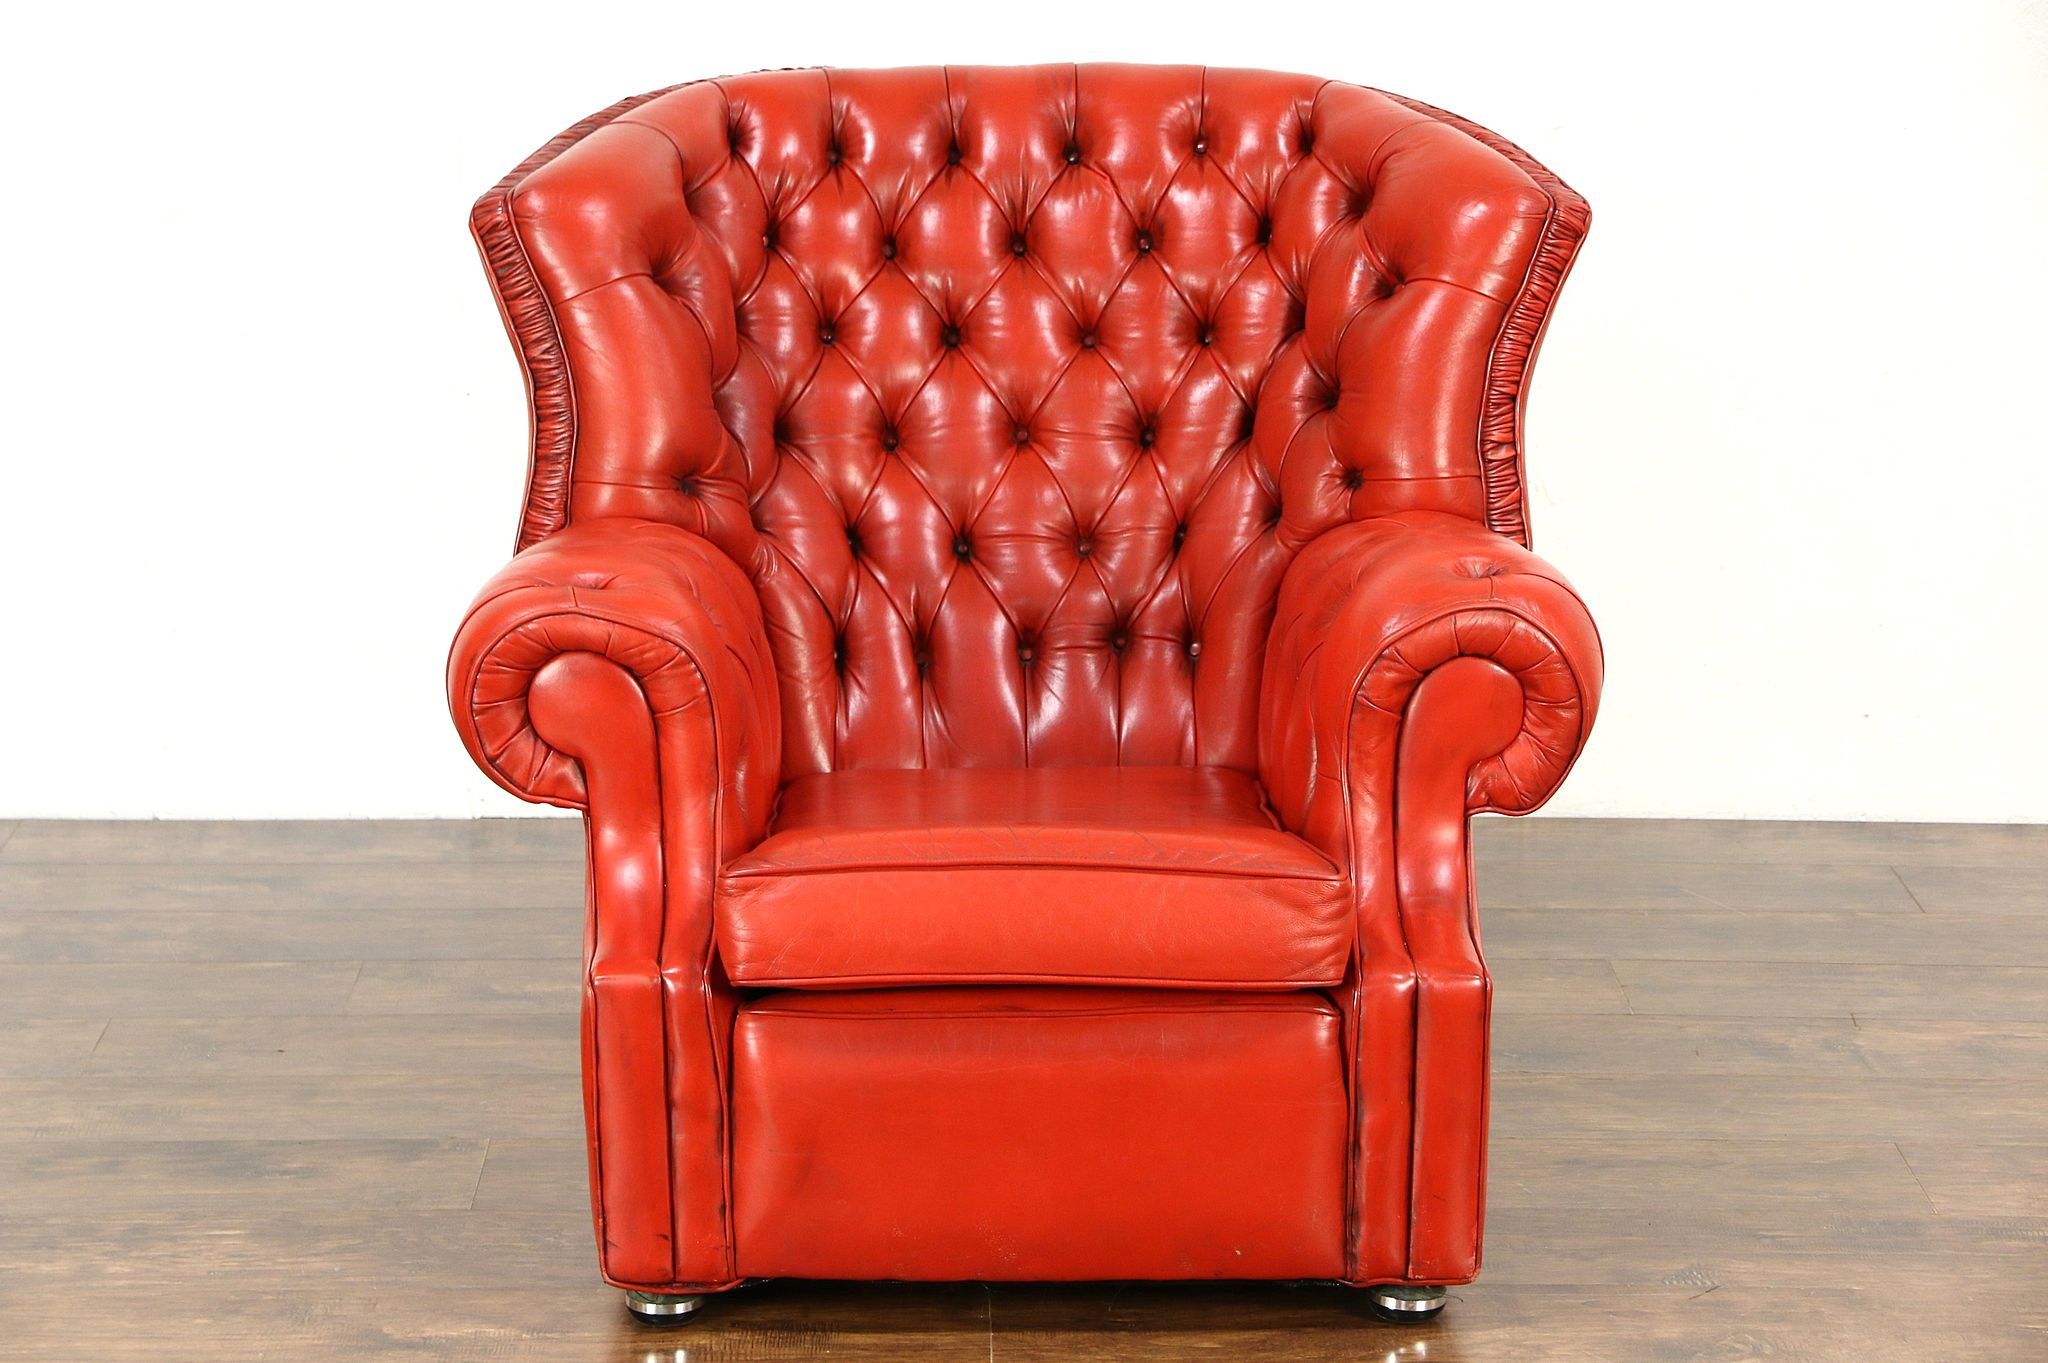 Red Tufted Leather Vintage Scandinavian Traditional Wing Chair